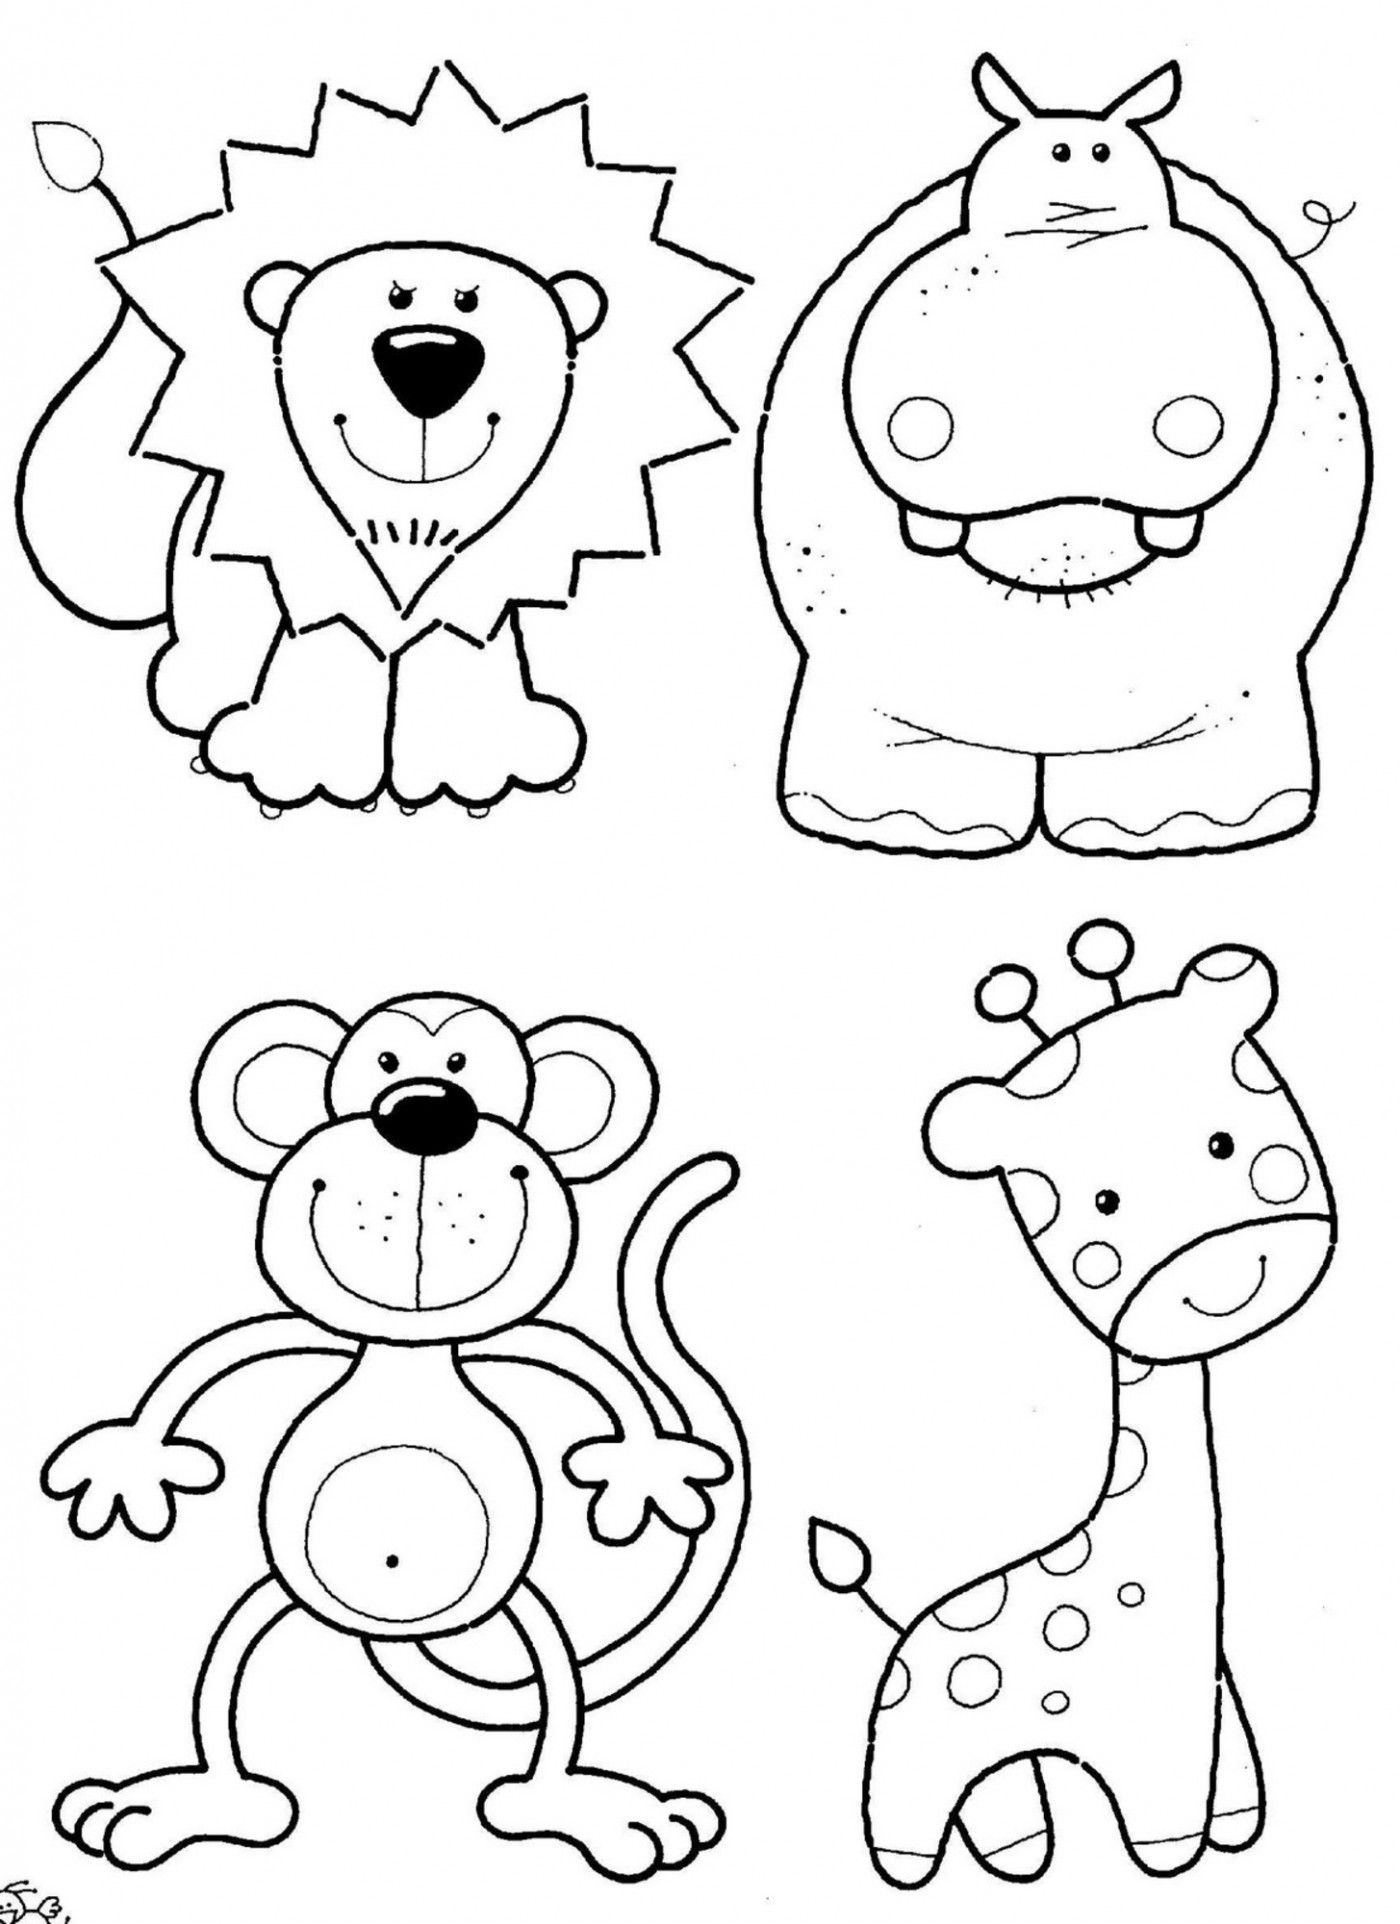 animal coloring pages 14 - Animals Coloring Book